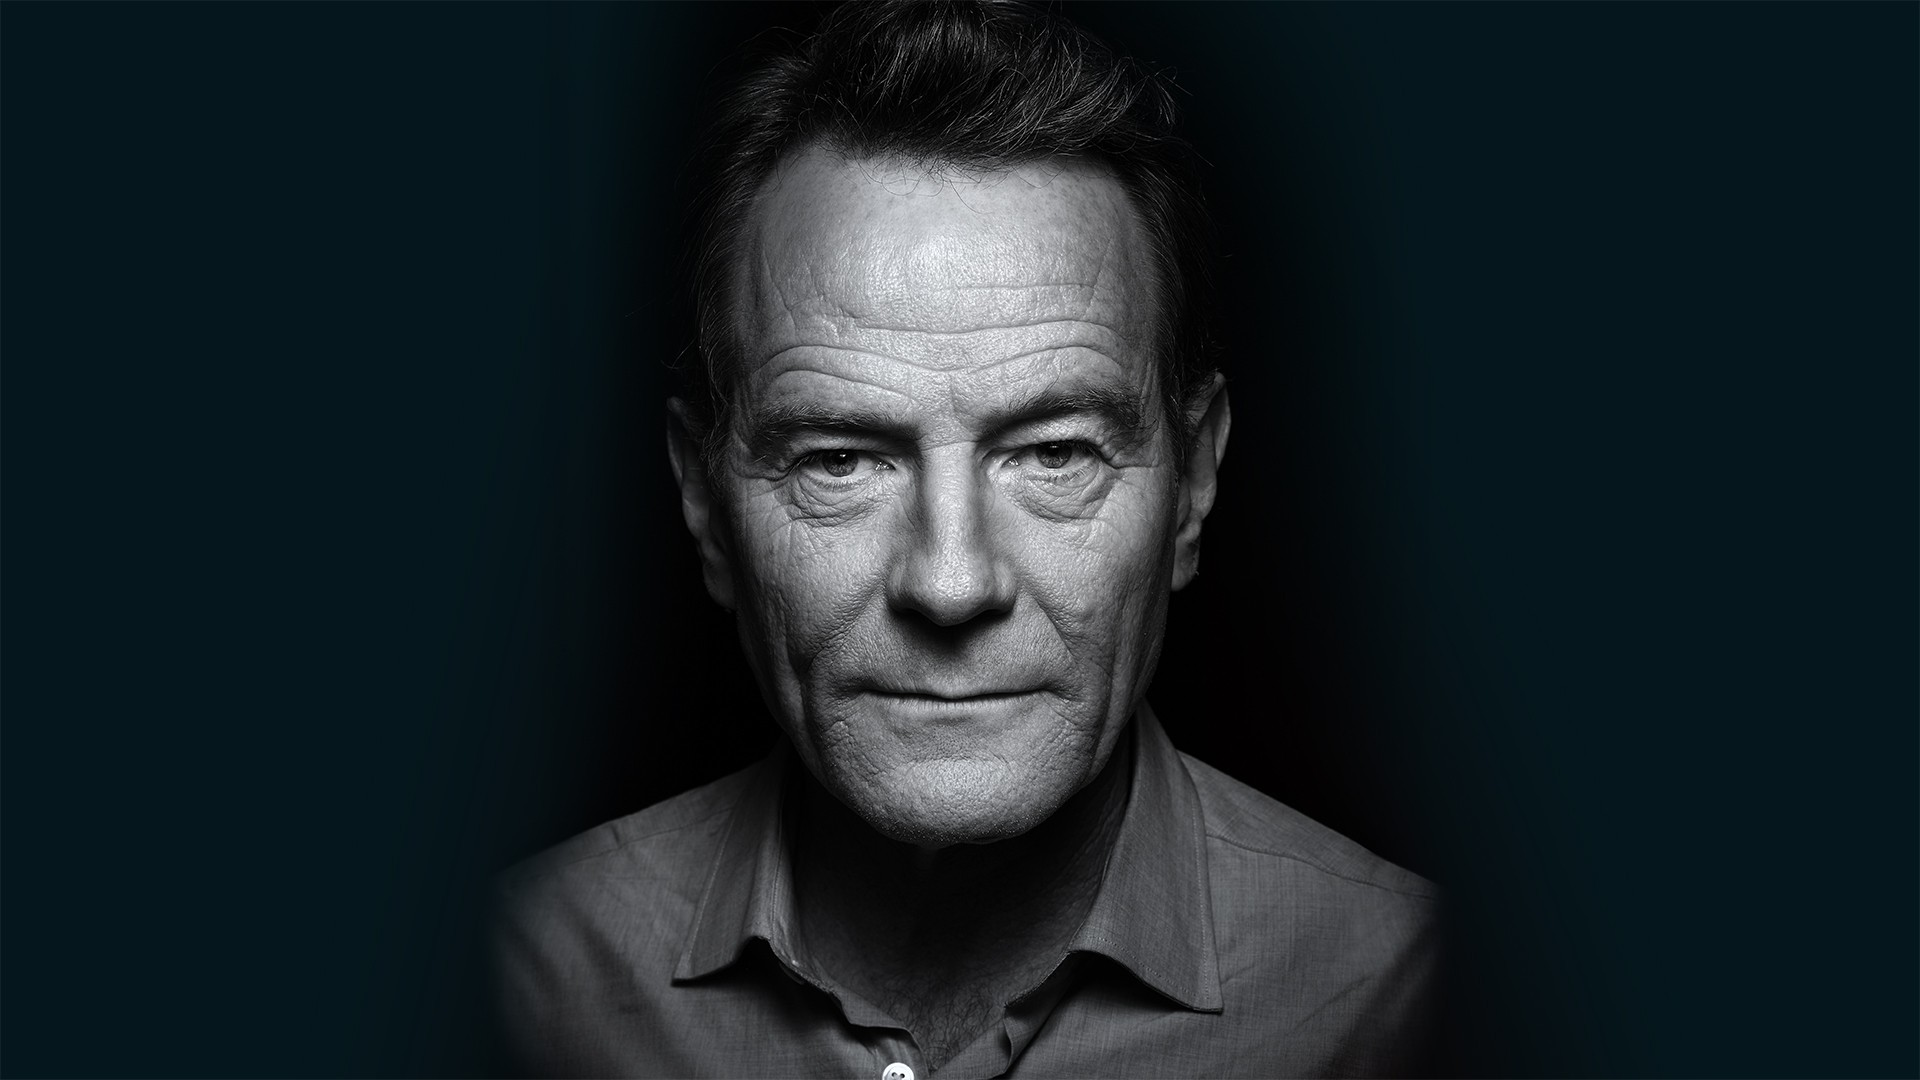 Bryan cranston interview